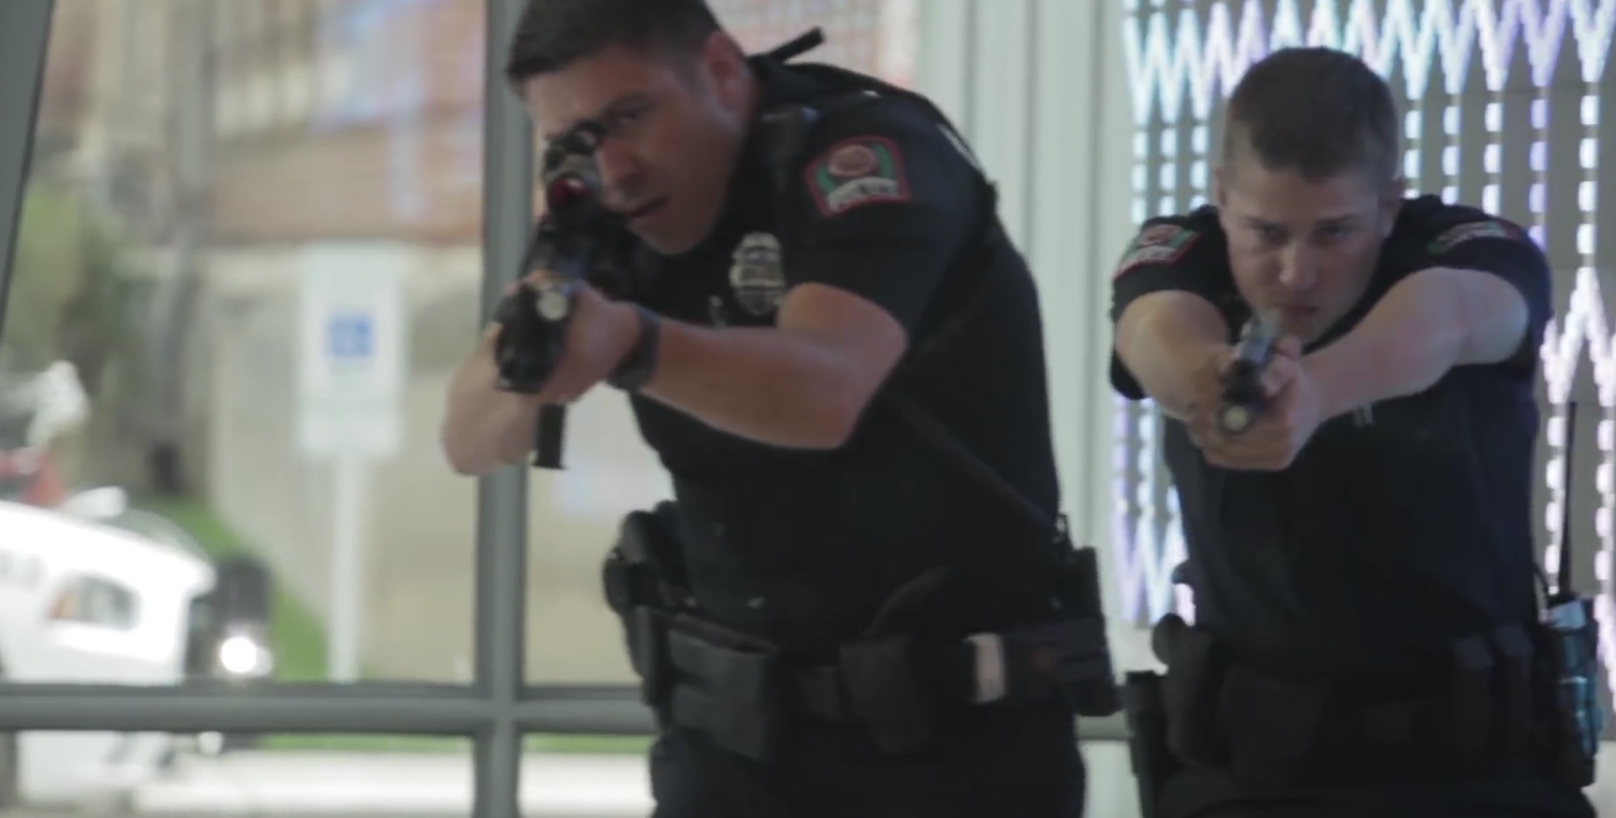 OSU Officer Was Featured in Active-Shooter Video, Shows Importance of Training